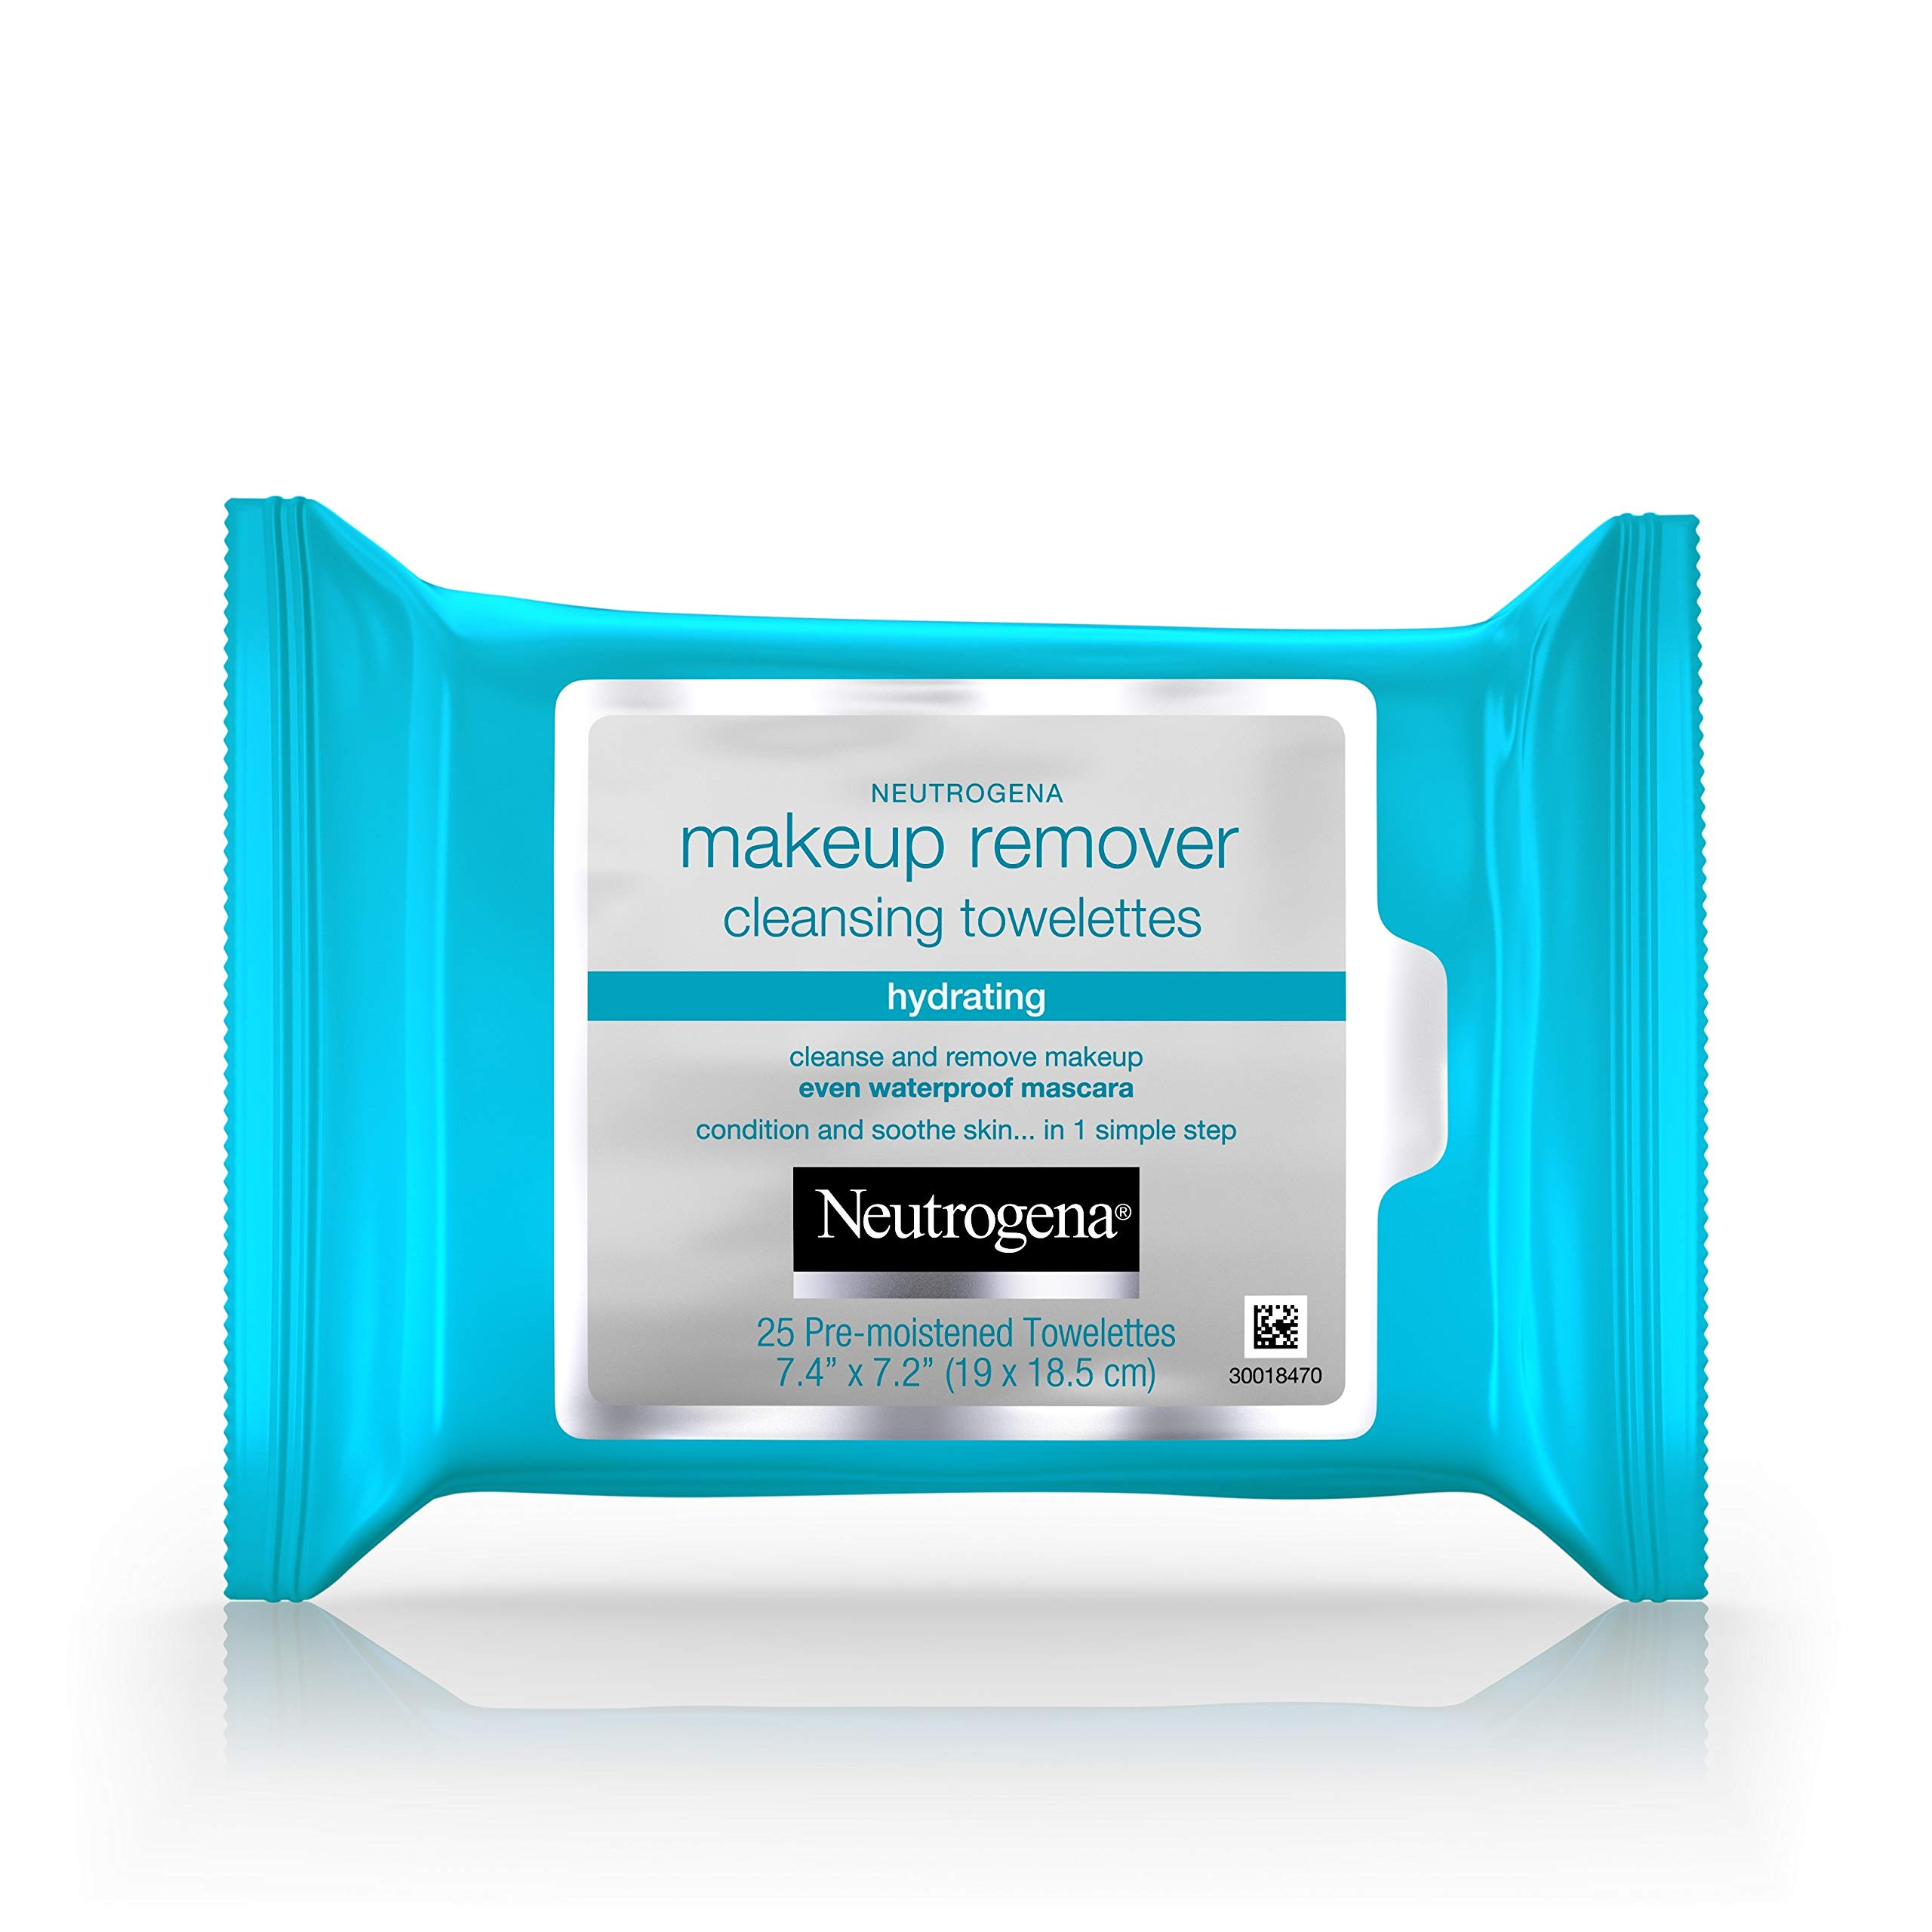 Neutrogena Hydrating Makeup Remover Facial Cleansing Wipes, Value Pack 25 Count (Pack of 3